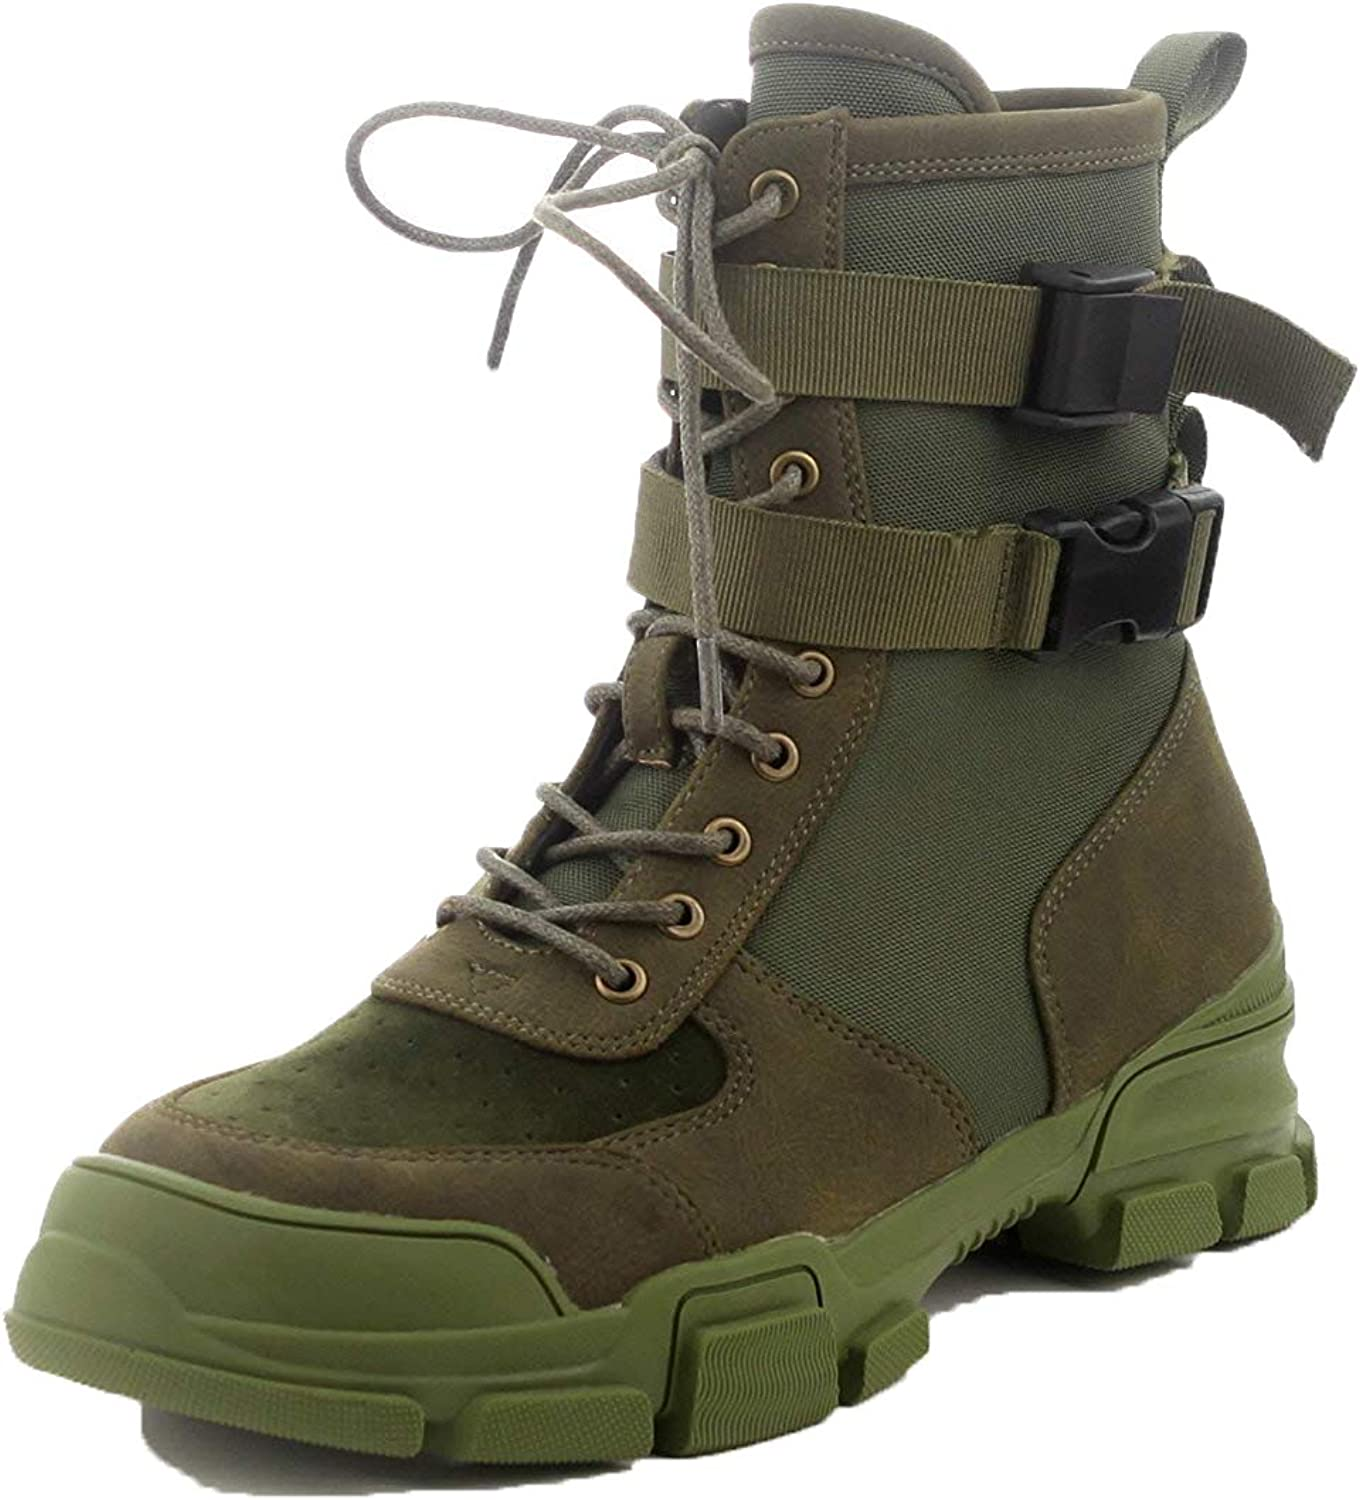 CAPE ROBBIN Utility Commander Olive Forest Green Military Tactical Buckle Strap Lug Sole Combat Boot